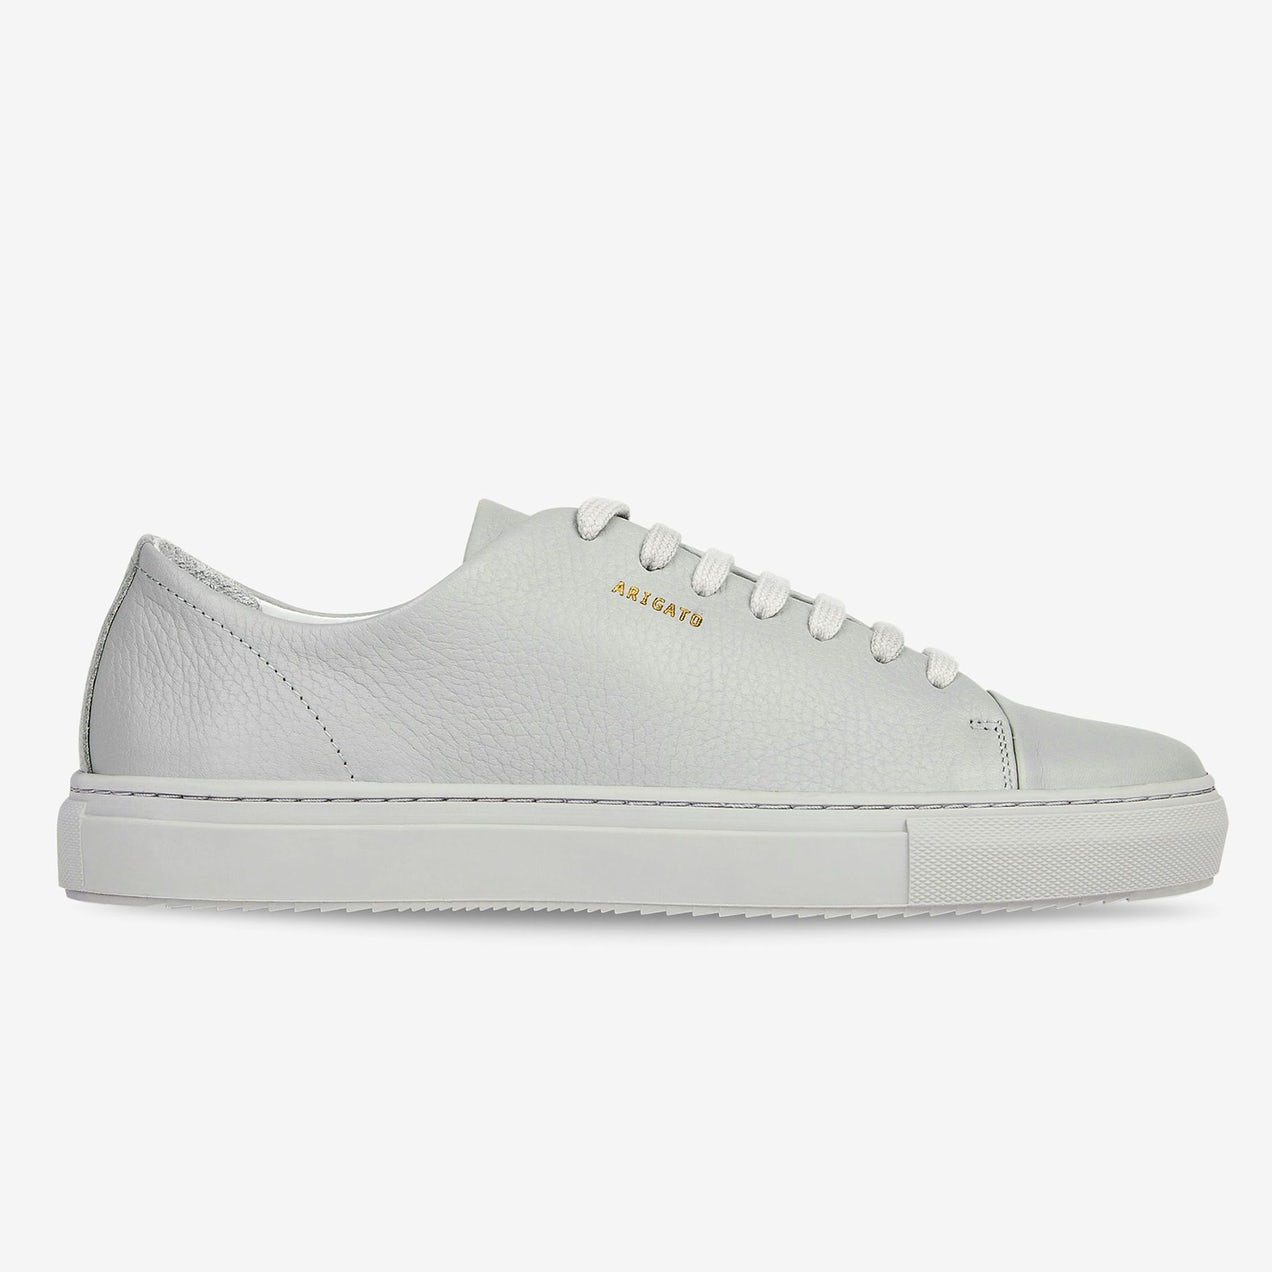 511cfebe467 The 10 Most Reasonably Priced Luxury Sneakers You Can Buy // ONE37pm